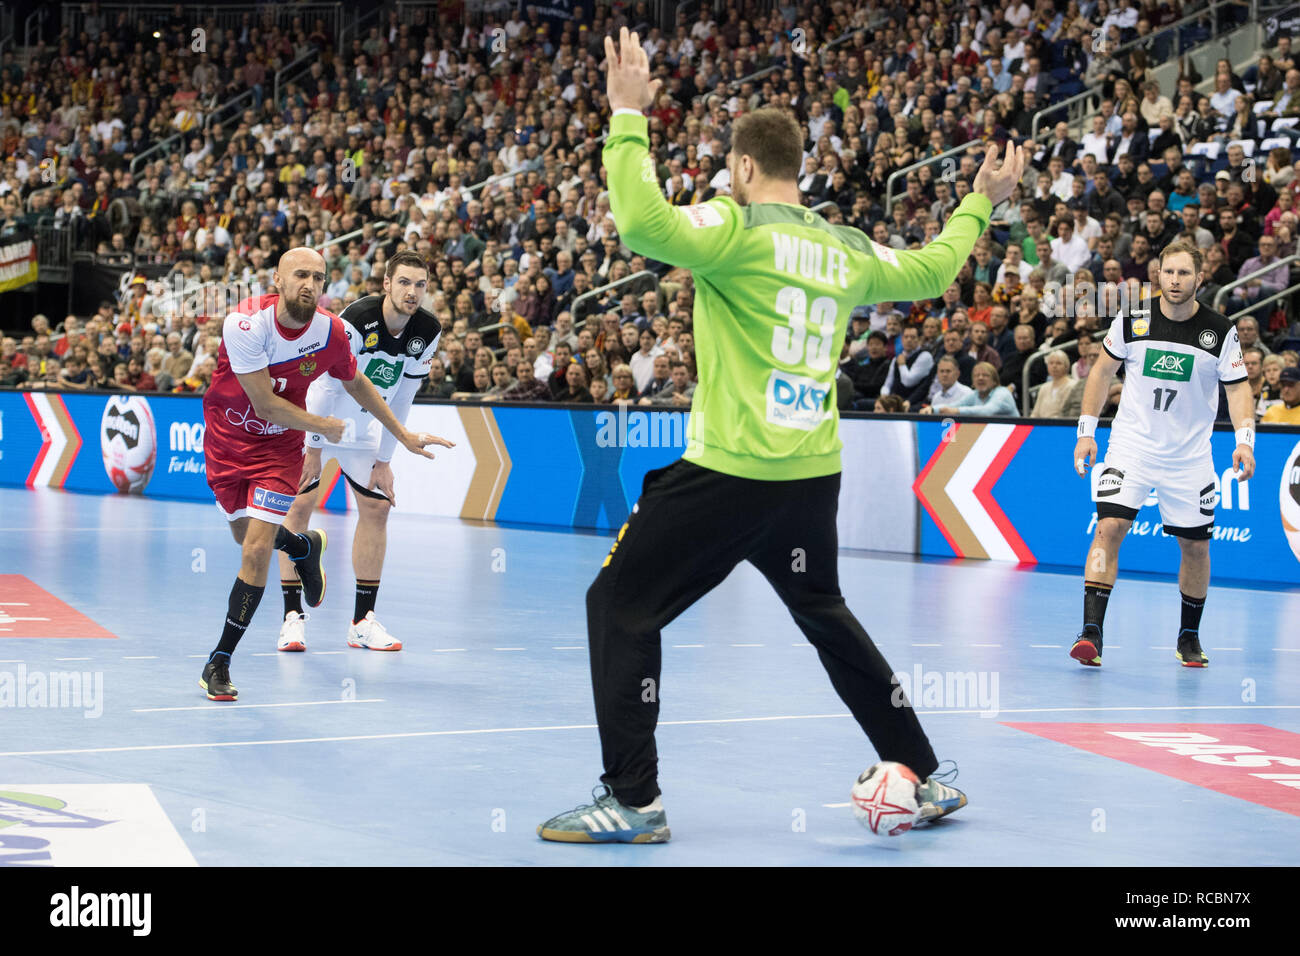 Timur DIBIROV (left, RUS) throws the ball during a seven-meter goalie Andreas WOLFF (GER) through the legs, action, tunneled, penalty throw, action, preliminary round Group A, Russia (RUS) - Germany (GER) 22:22, on 14/01/2019 in Berlin / Germany. Handball World Cup 2019, from 10.01. - 27.01.2019 in Germany and Denmark. | Usage worldwide Stock Photo